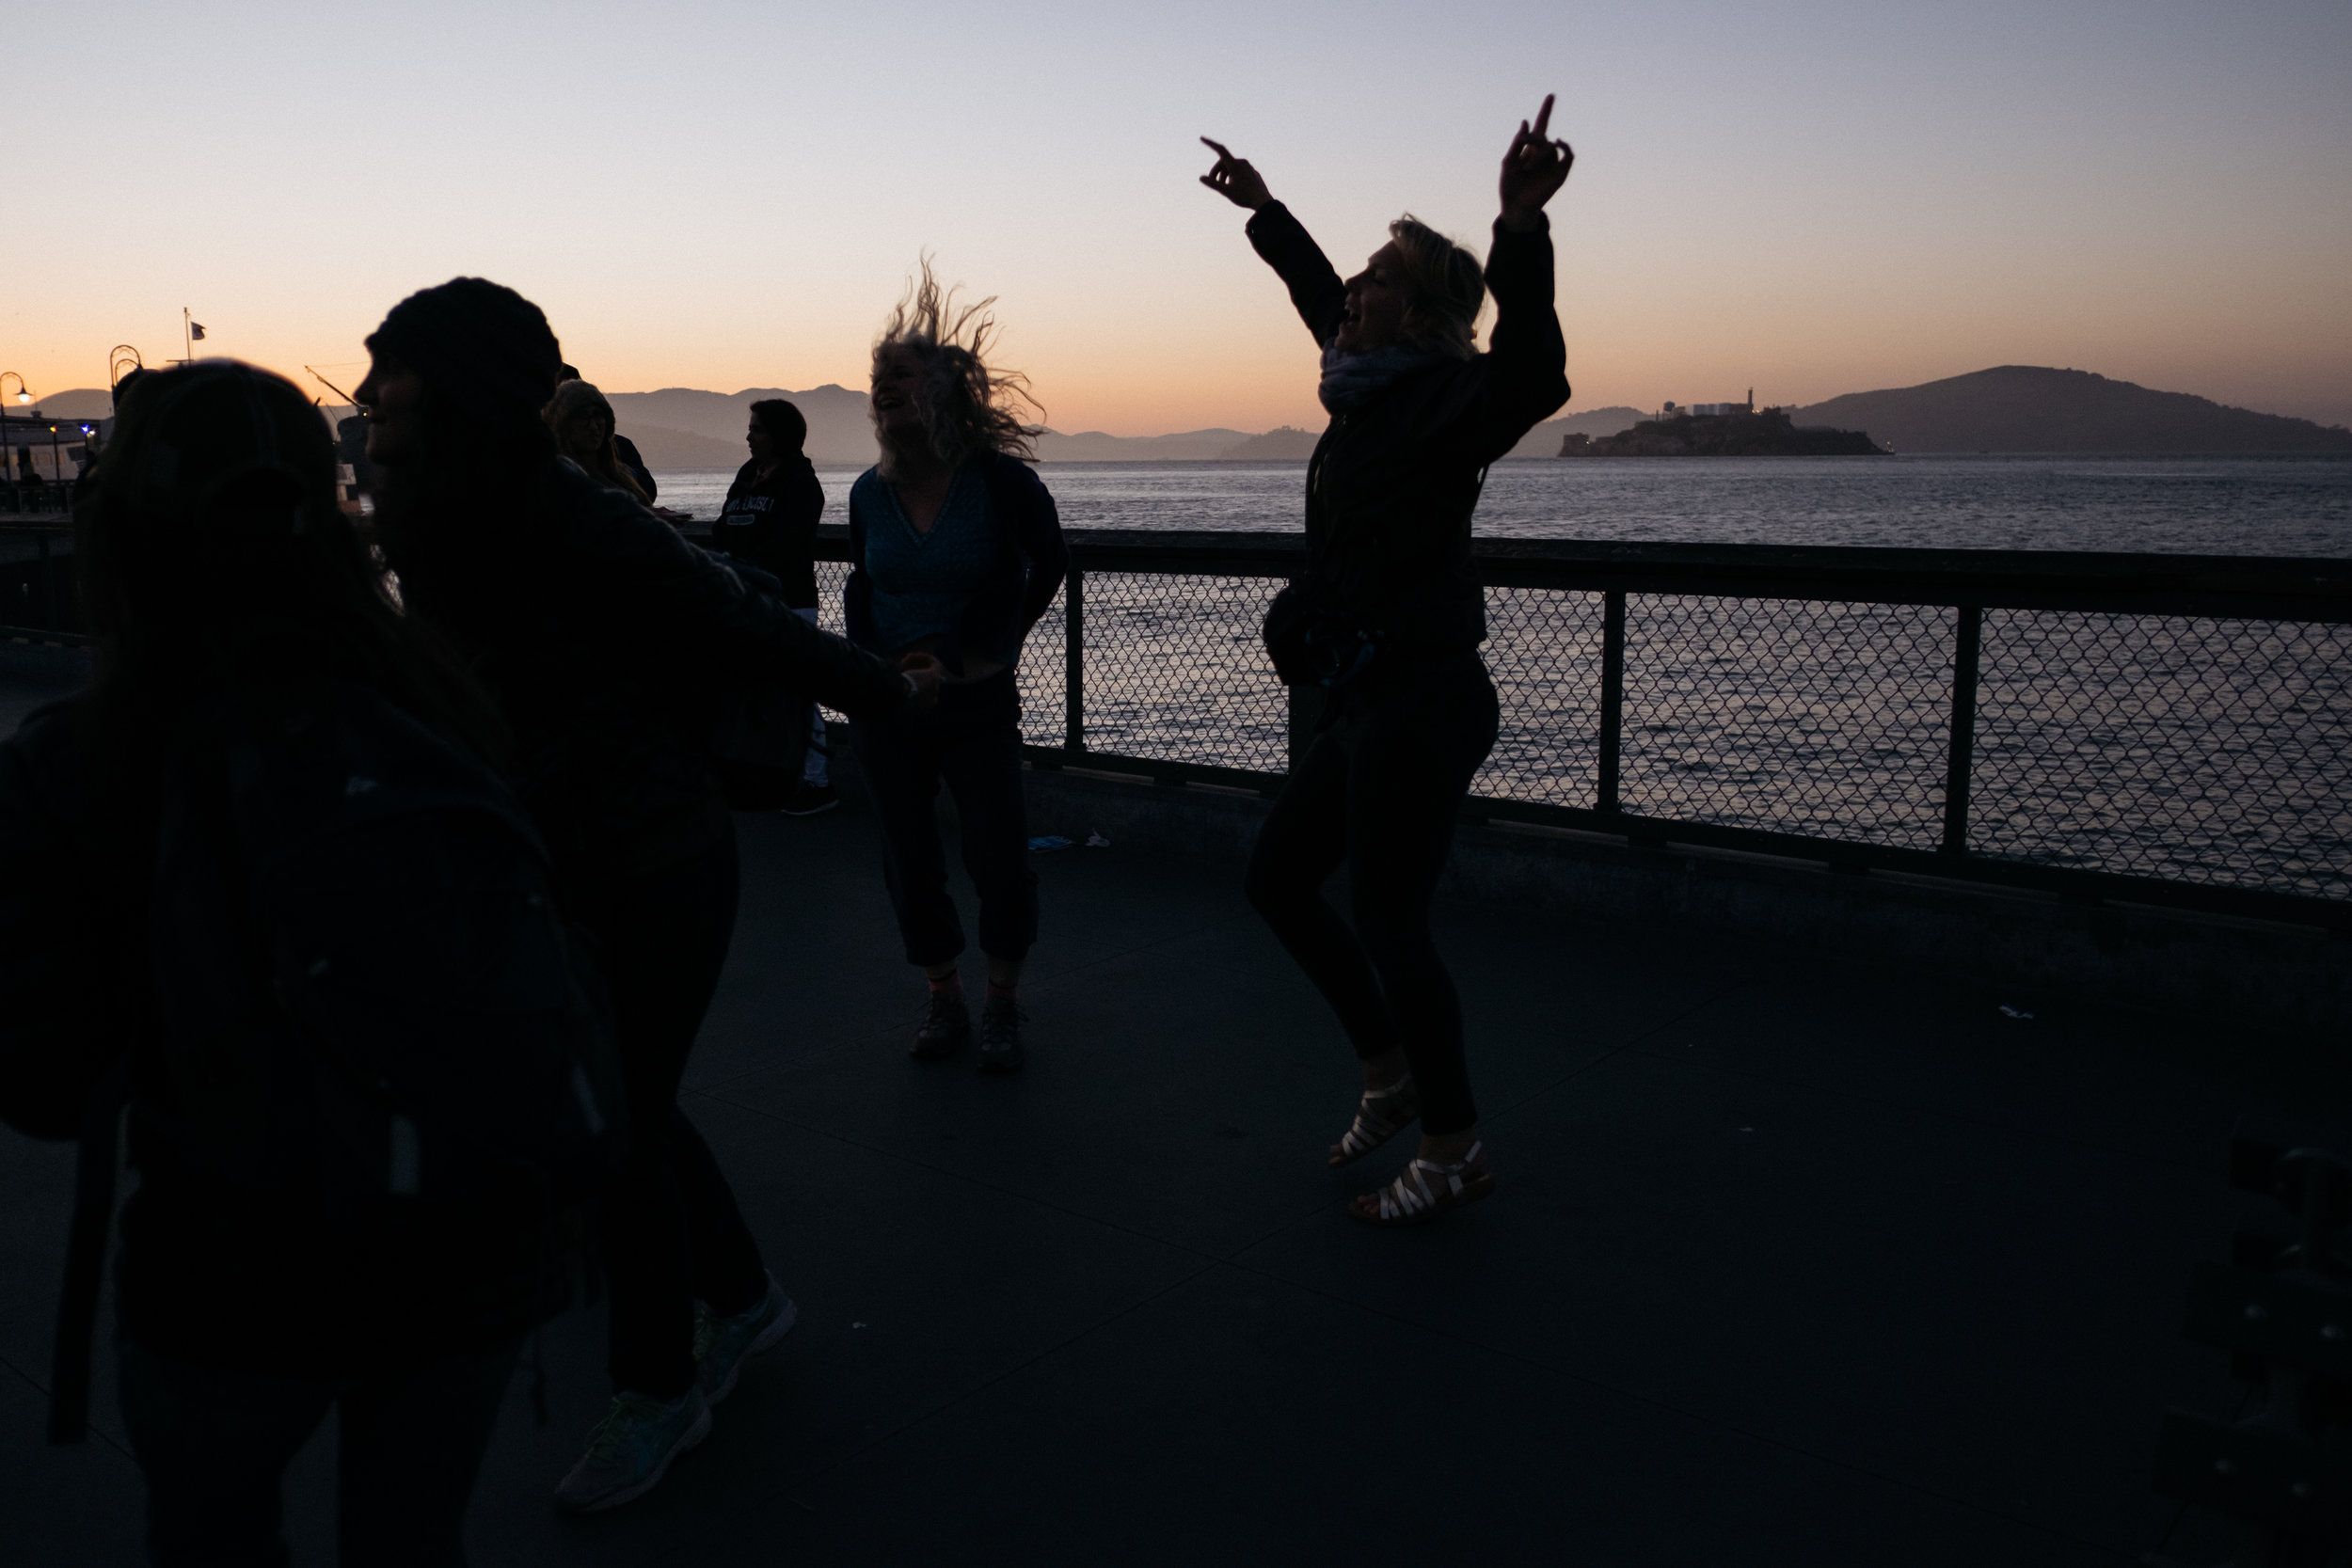 Dancer silhouette in San Francisco